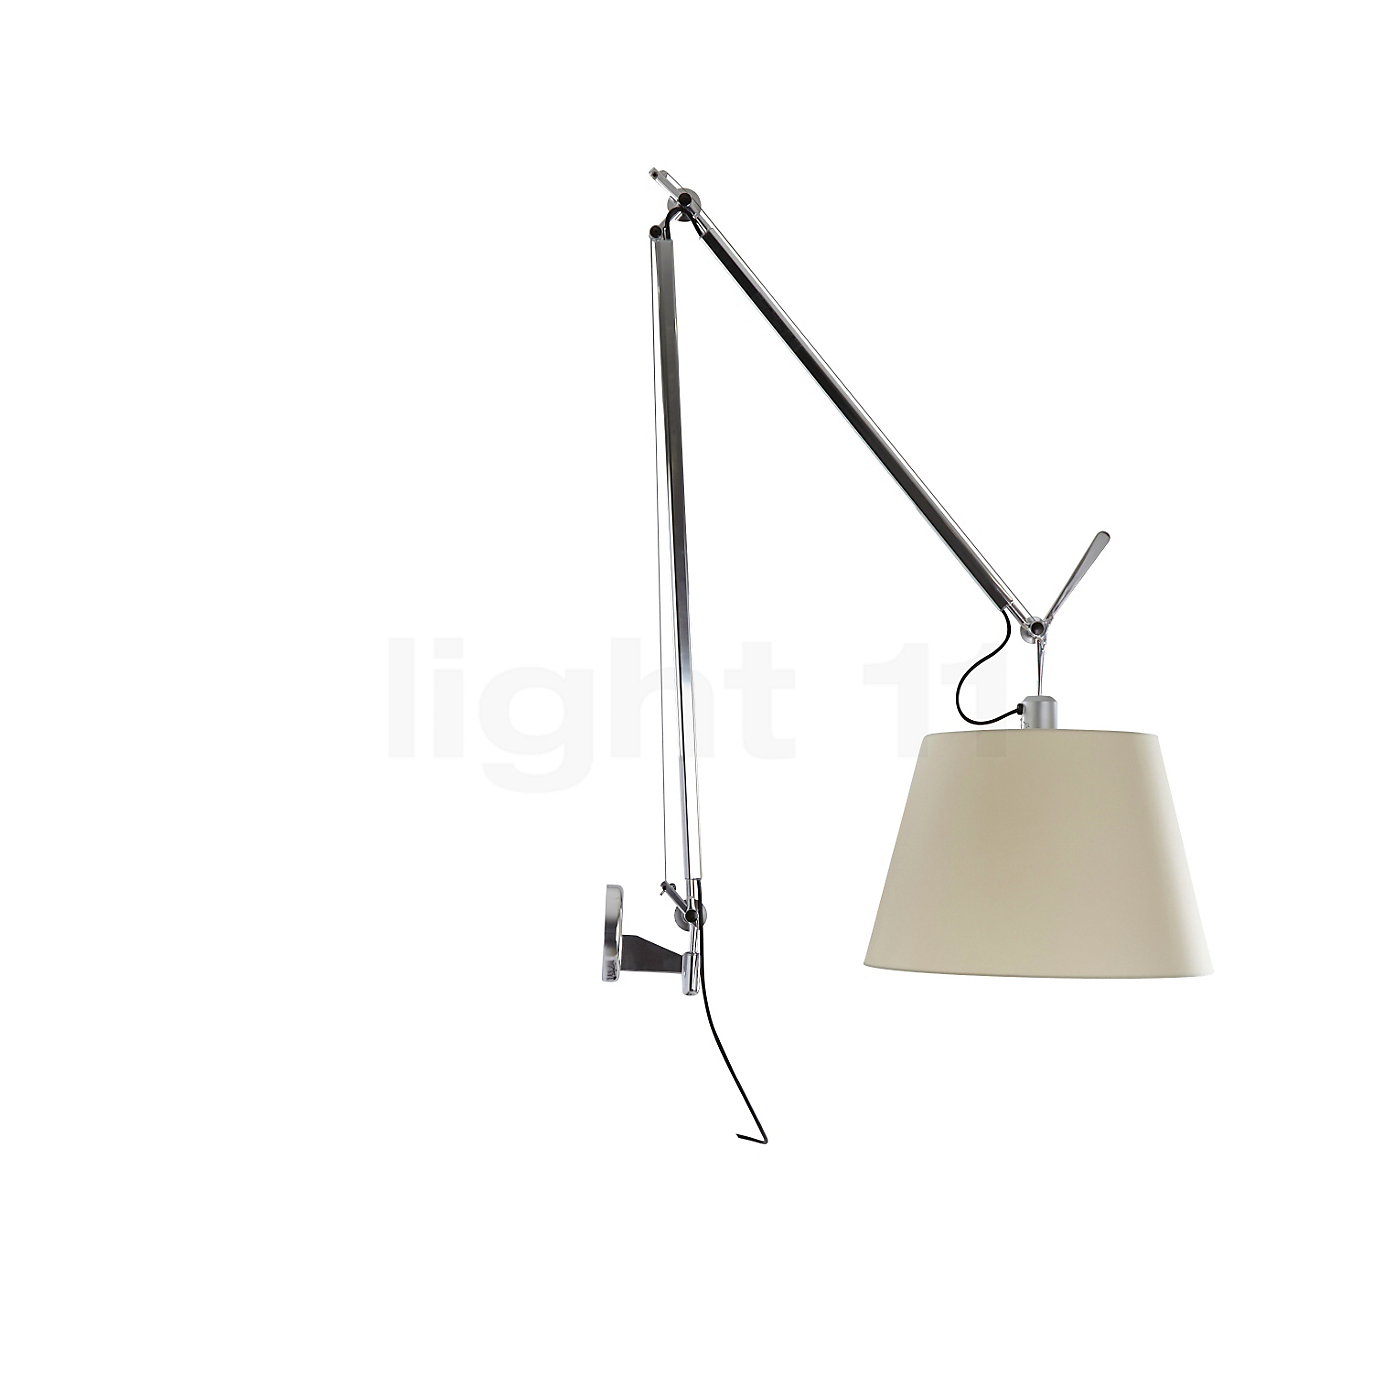 artemide tolomeo mega parete leeslamp kopen op. Black Bedroom Furniture Sets. Home Design Ideas